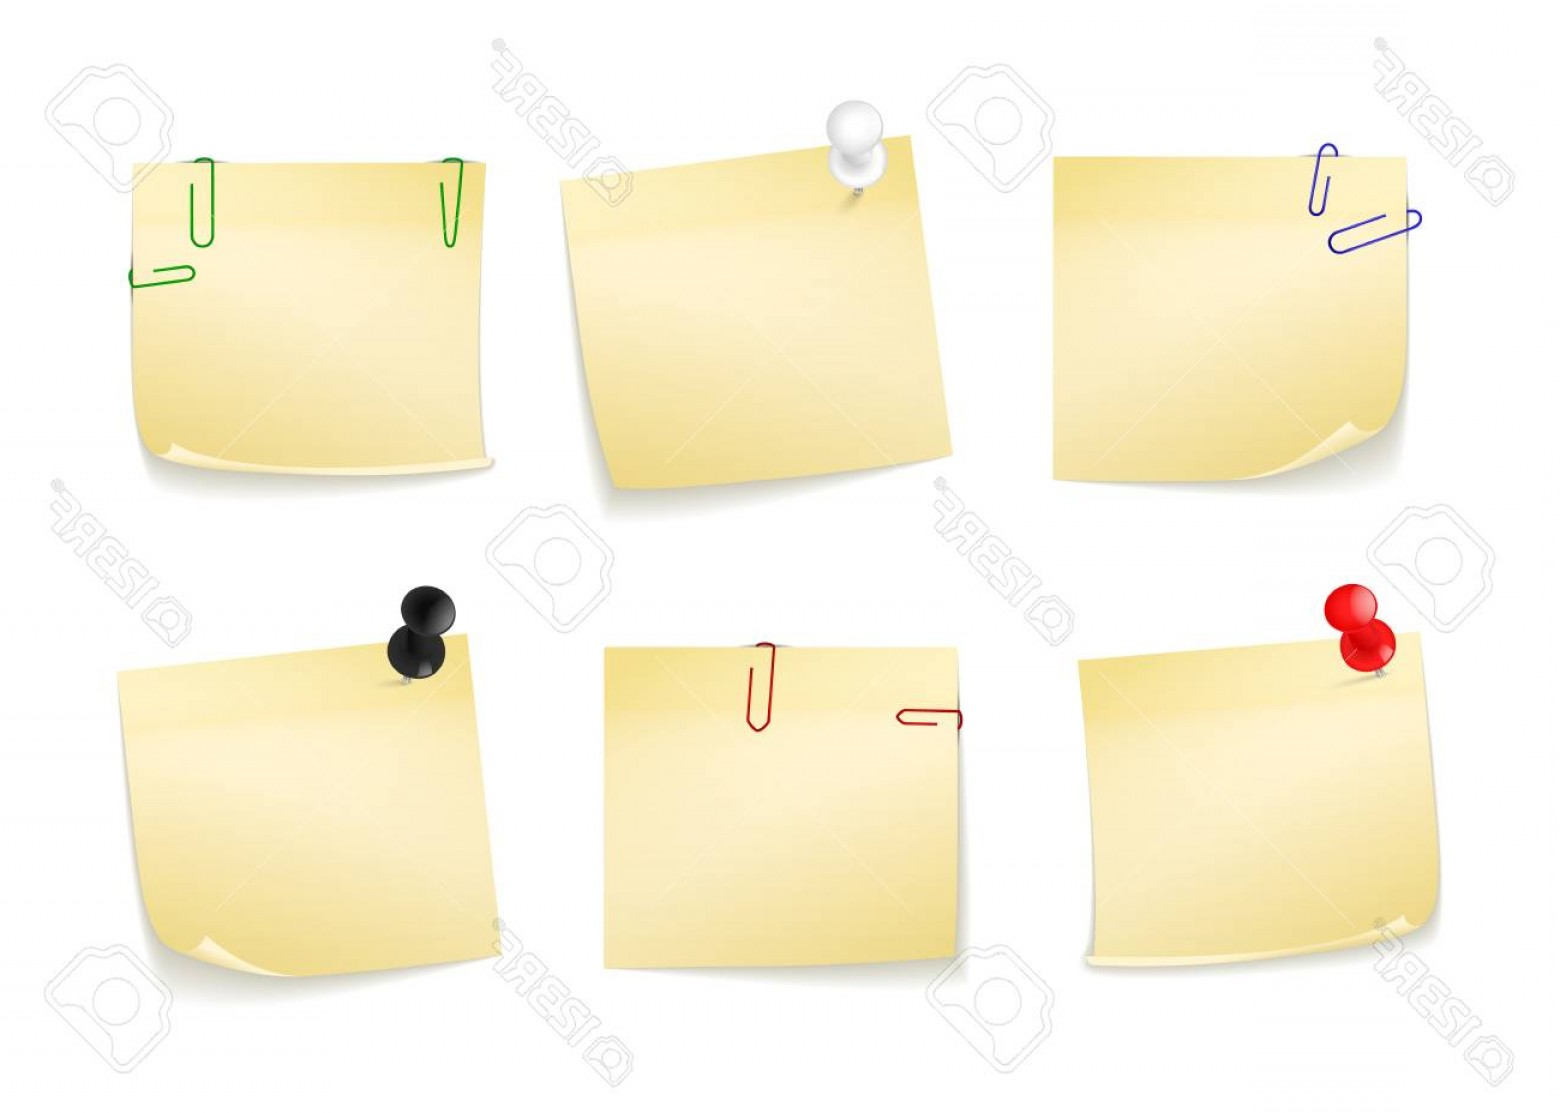 White Staples Vector Logo: Photostock Vector Collection Of Different Yellow Stickers For Your Notes Attached Buttons And Staples Vector Illustrat